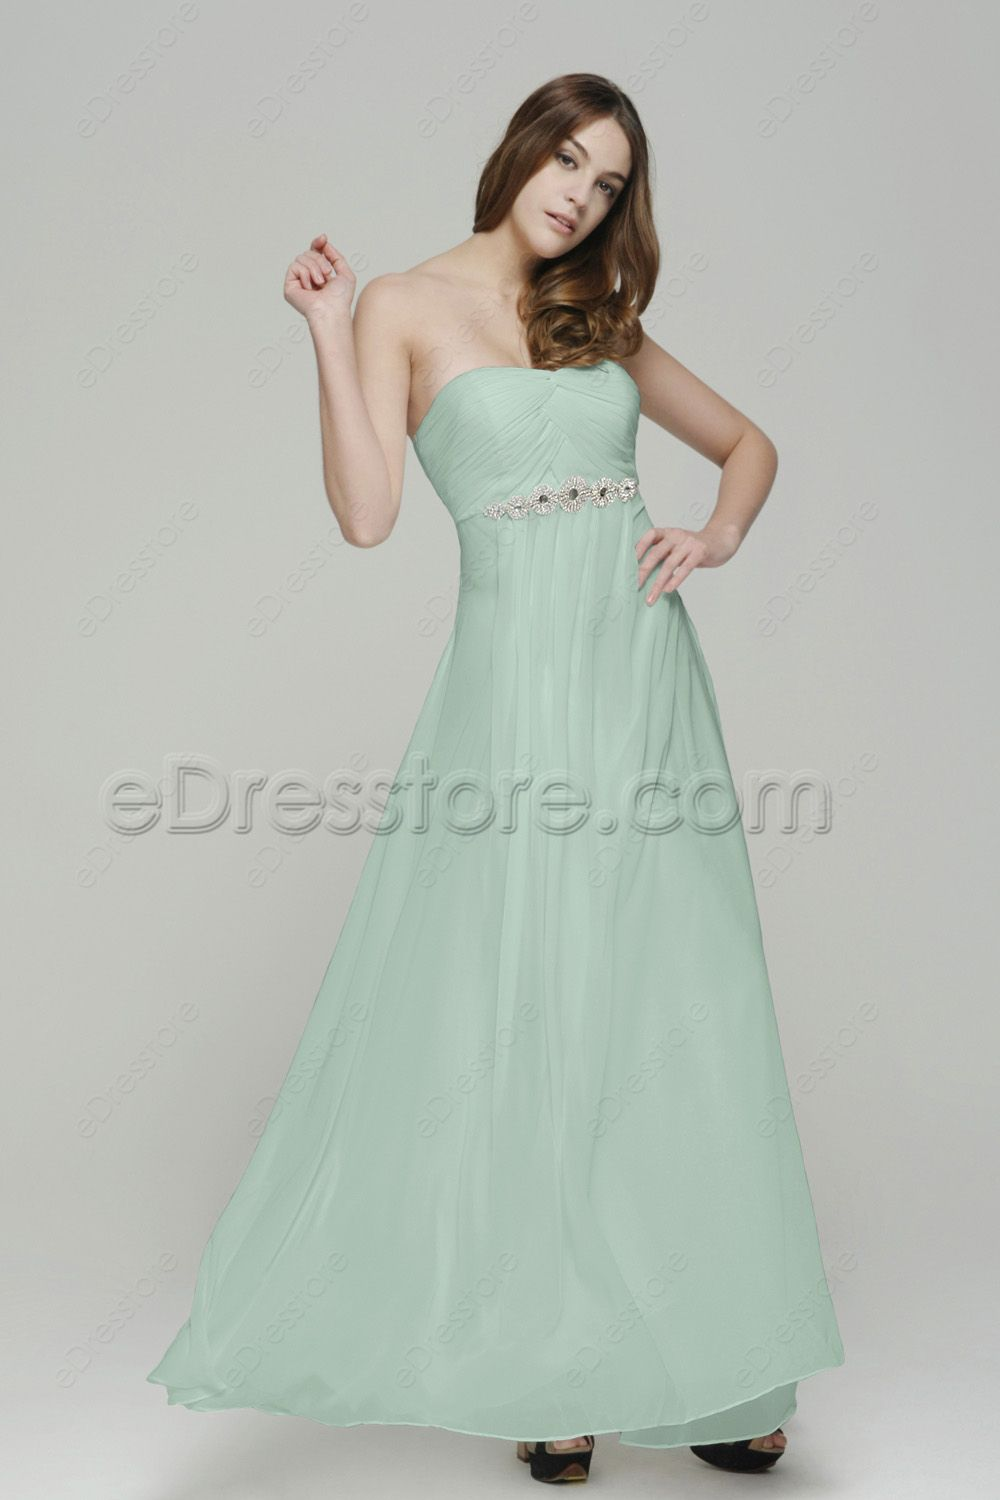 Strapless Pastel Green Long Prom Dresses with Crystals | Maternity ...